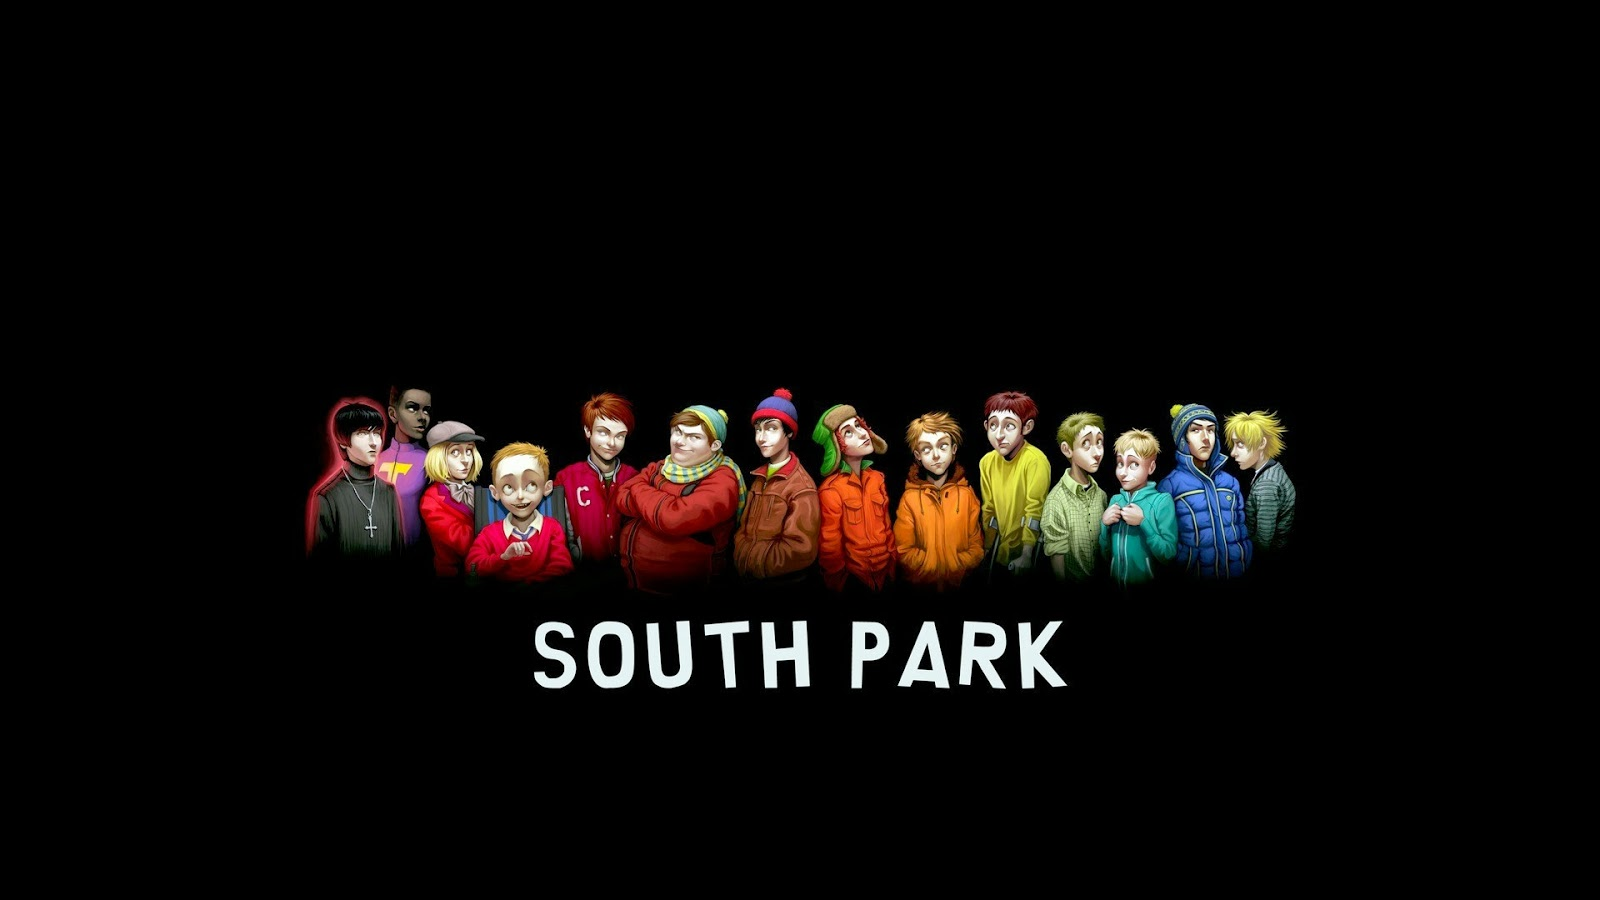 south park for free